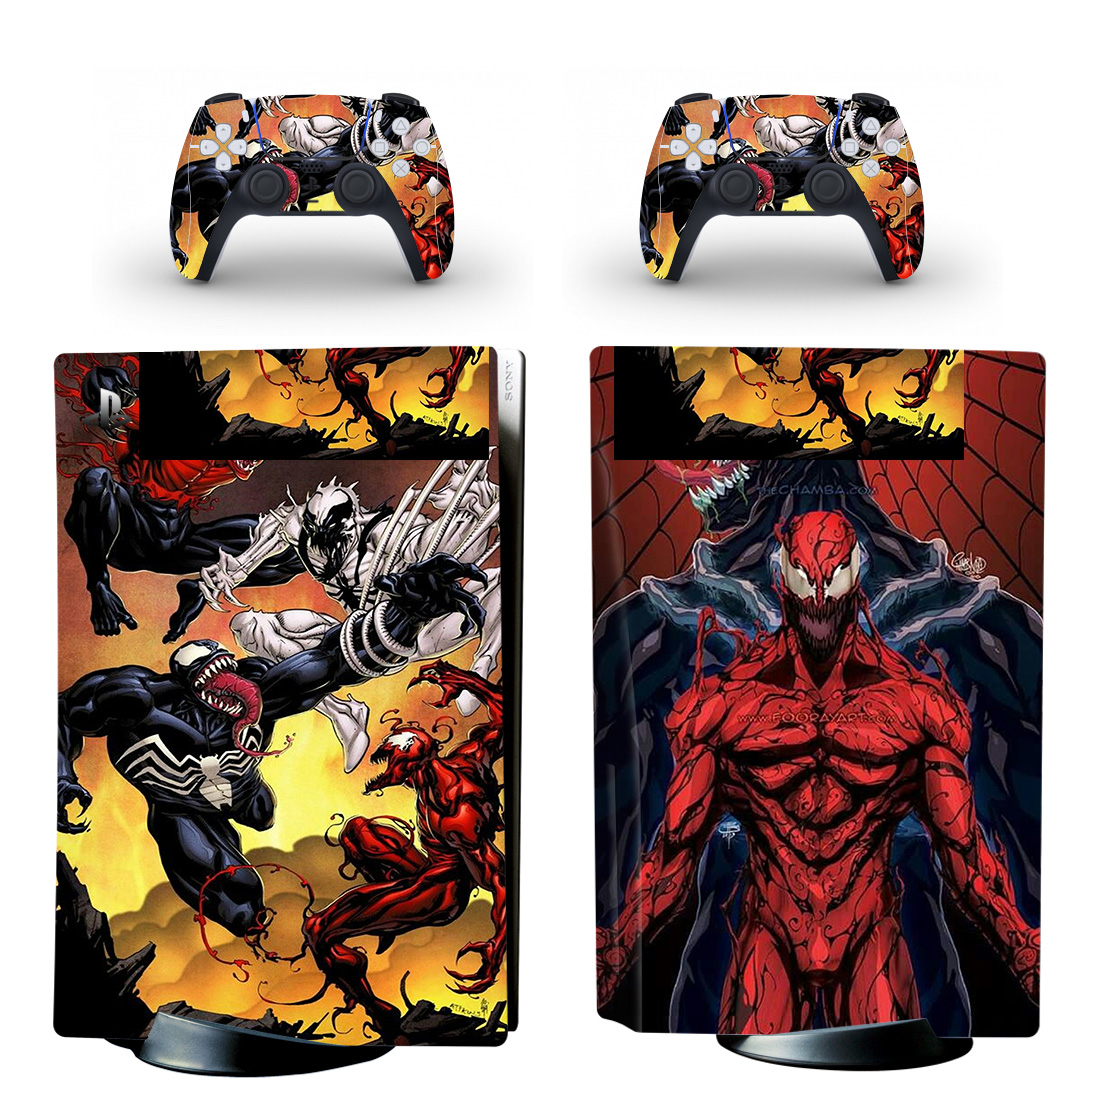 Venom PS5 Skin Sticker For PlayStation 5 And Controllers Design 2